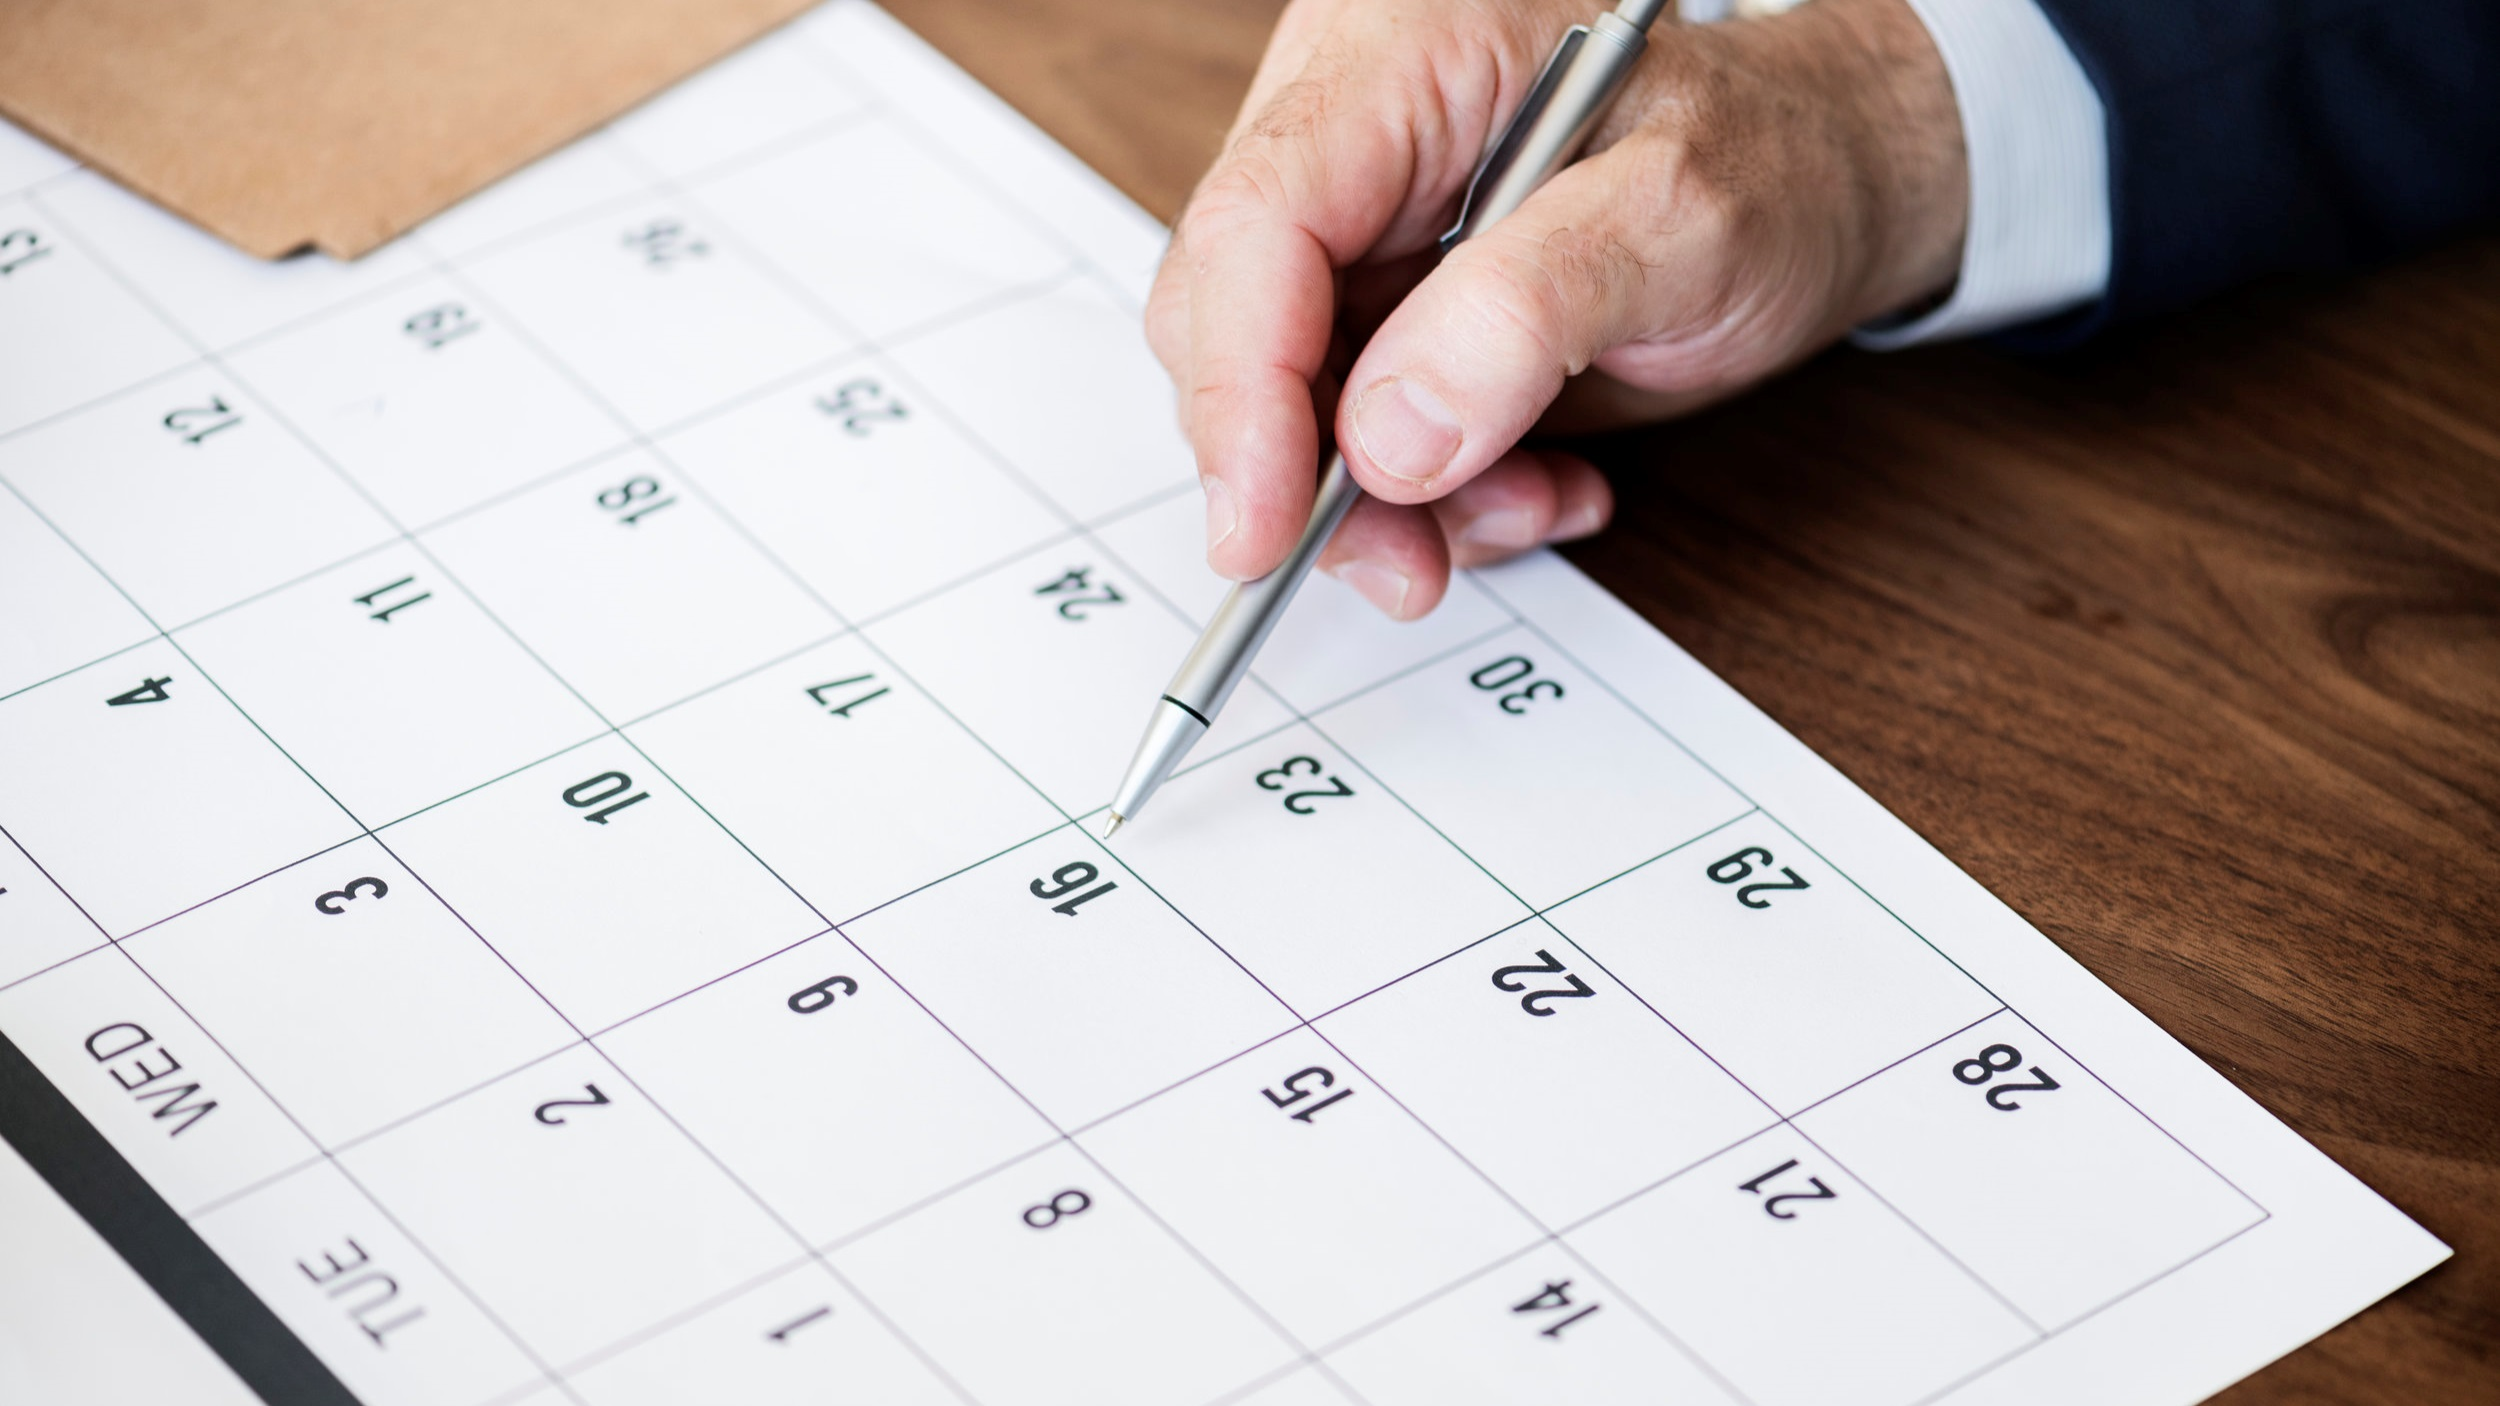 Don't Let Tax Time Sneak up on you. Mark in your Calendar Important Tax Dates and Deadlines with the help of this Guide.